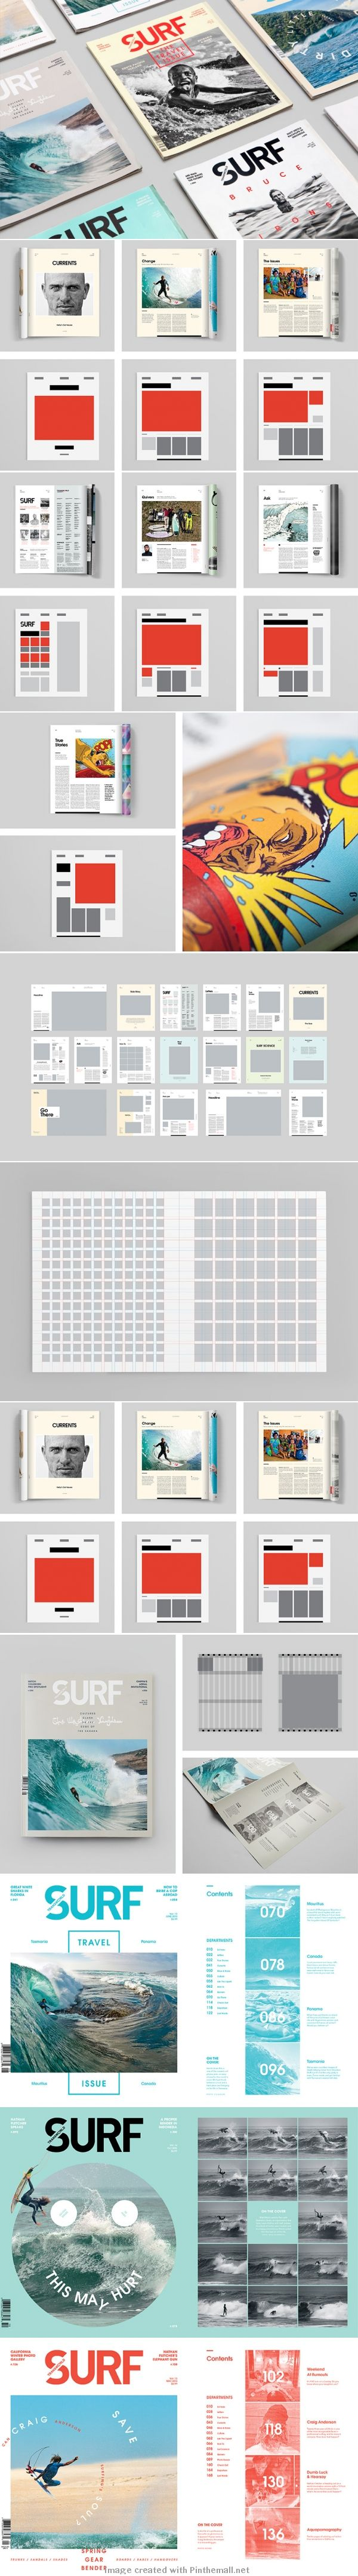 Surf magazine grid layout